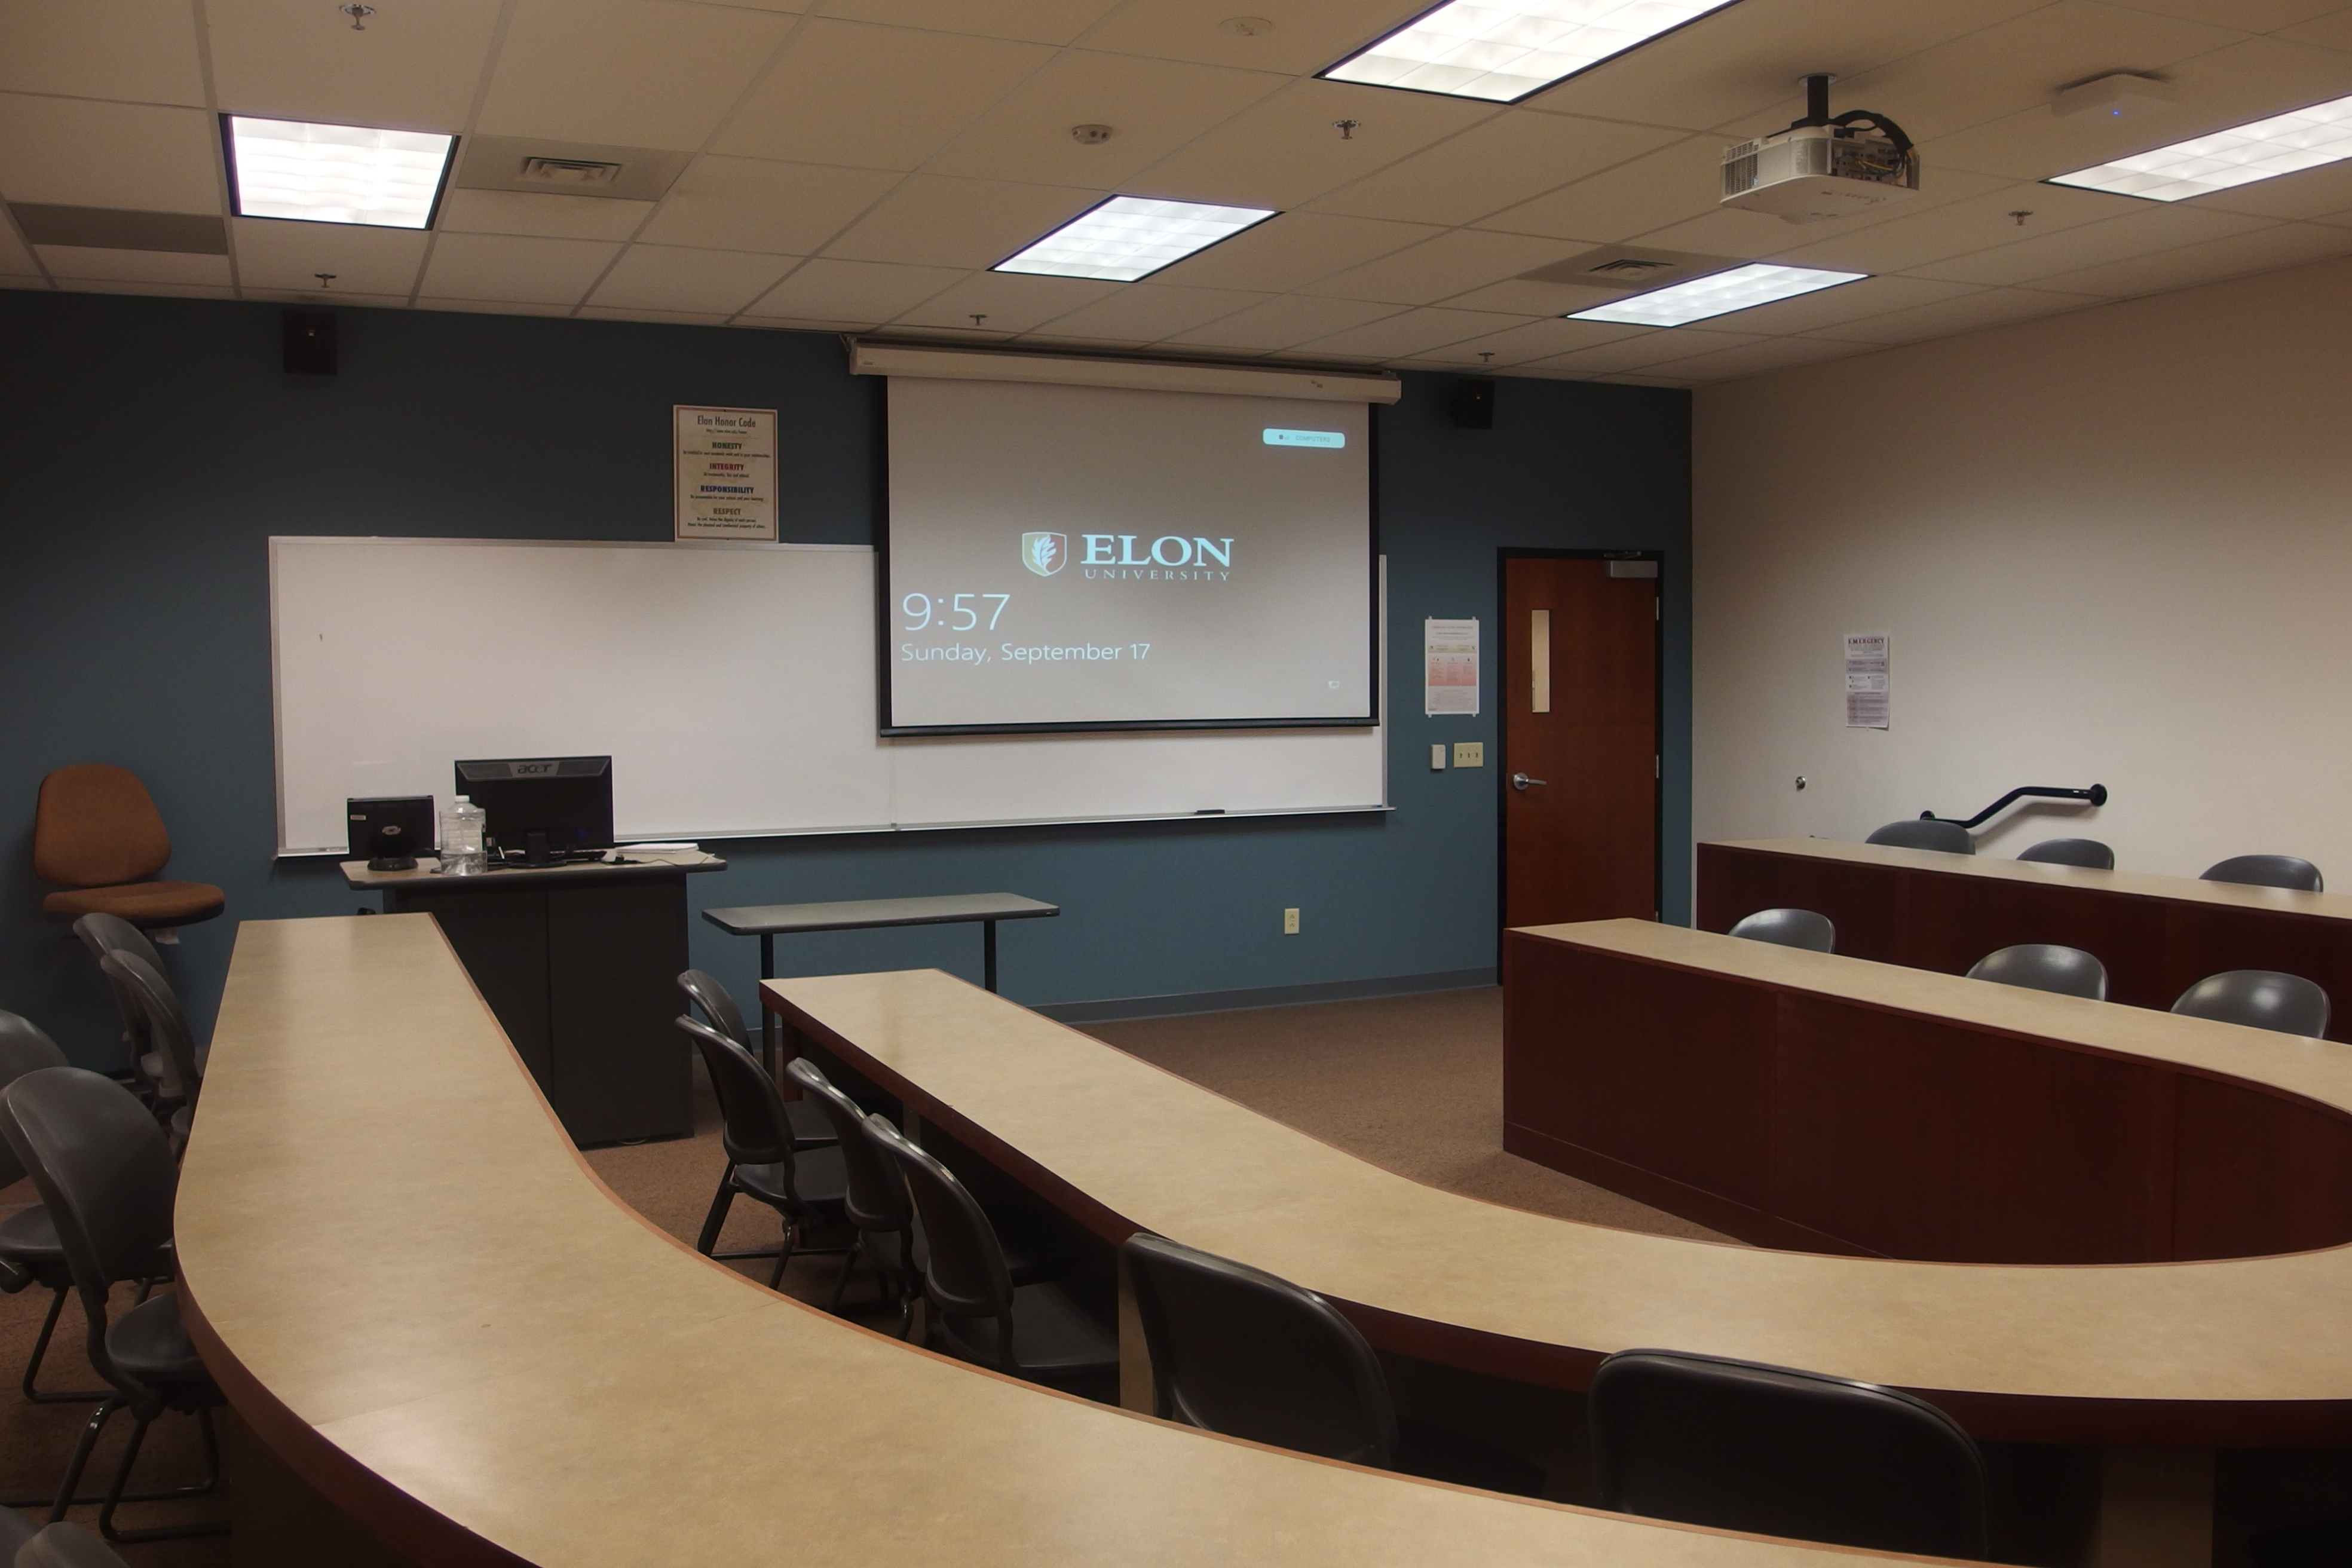 Photo of the space taken from the back of the classroom showing the lowered projector screen, the instructor's station